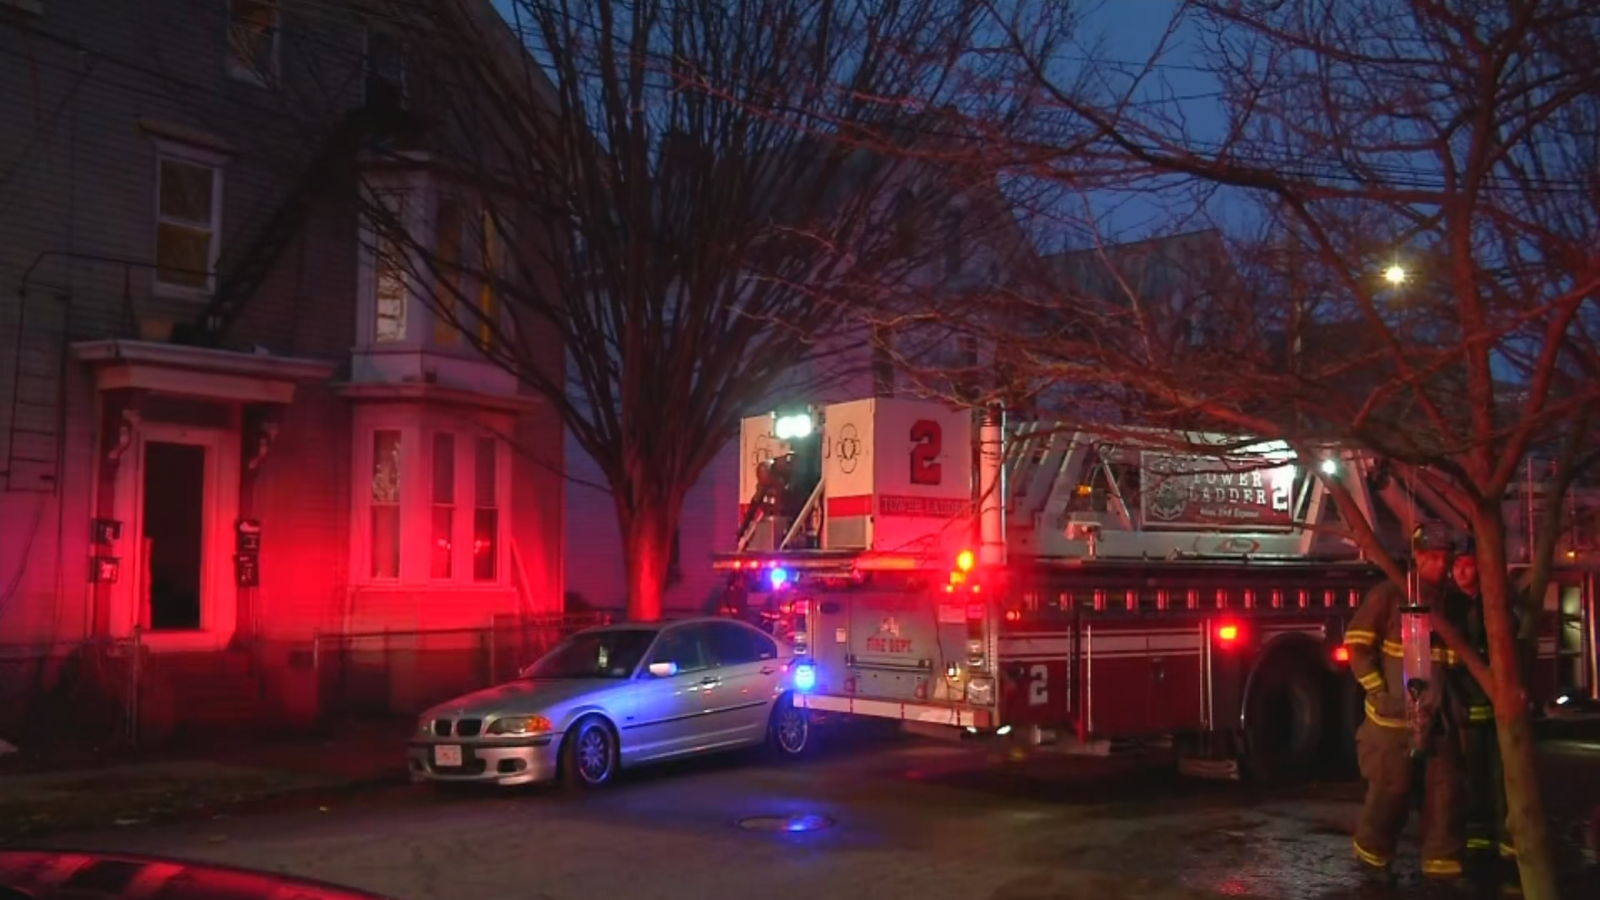 Investigators said a 7-year-old boy dropped a match and set a couch on fire in an apartment house on Hudson Street, Thursday, Feb. 21, 2020. (WJAR)